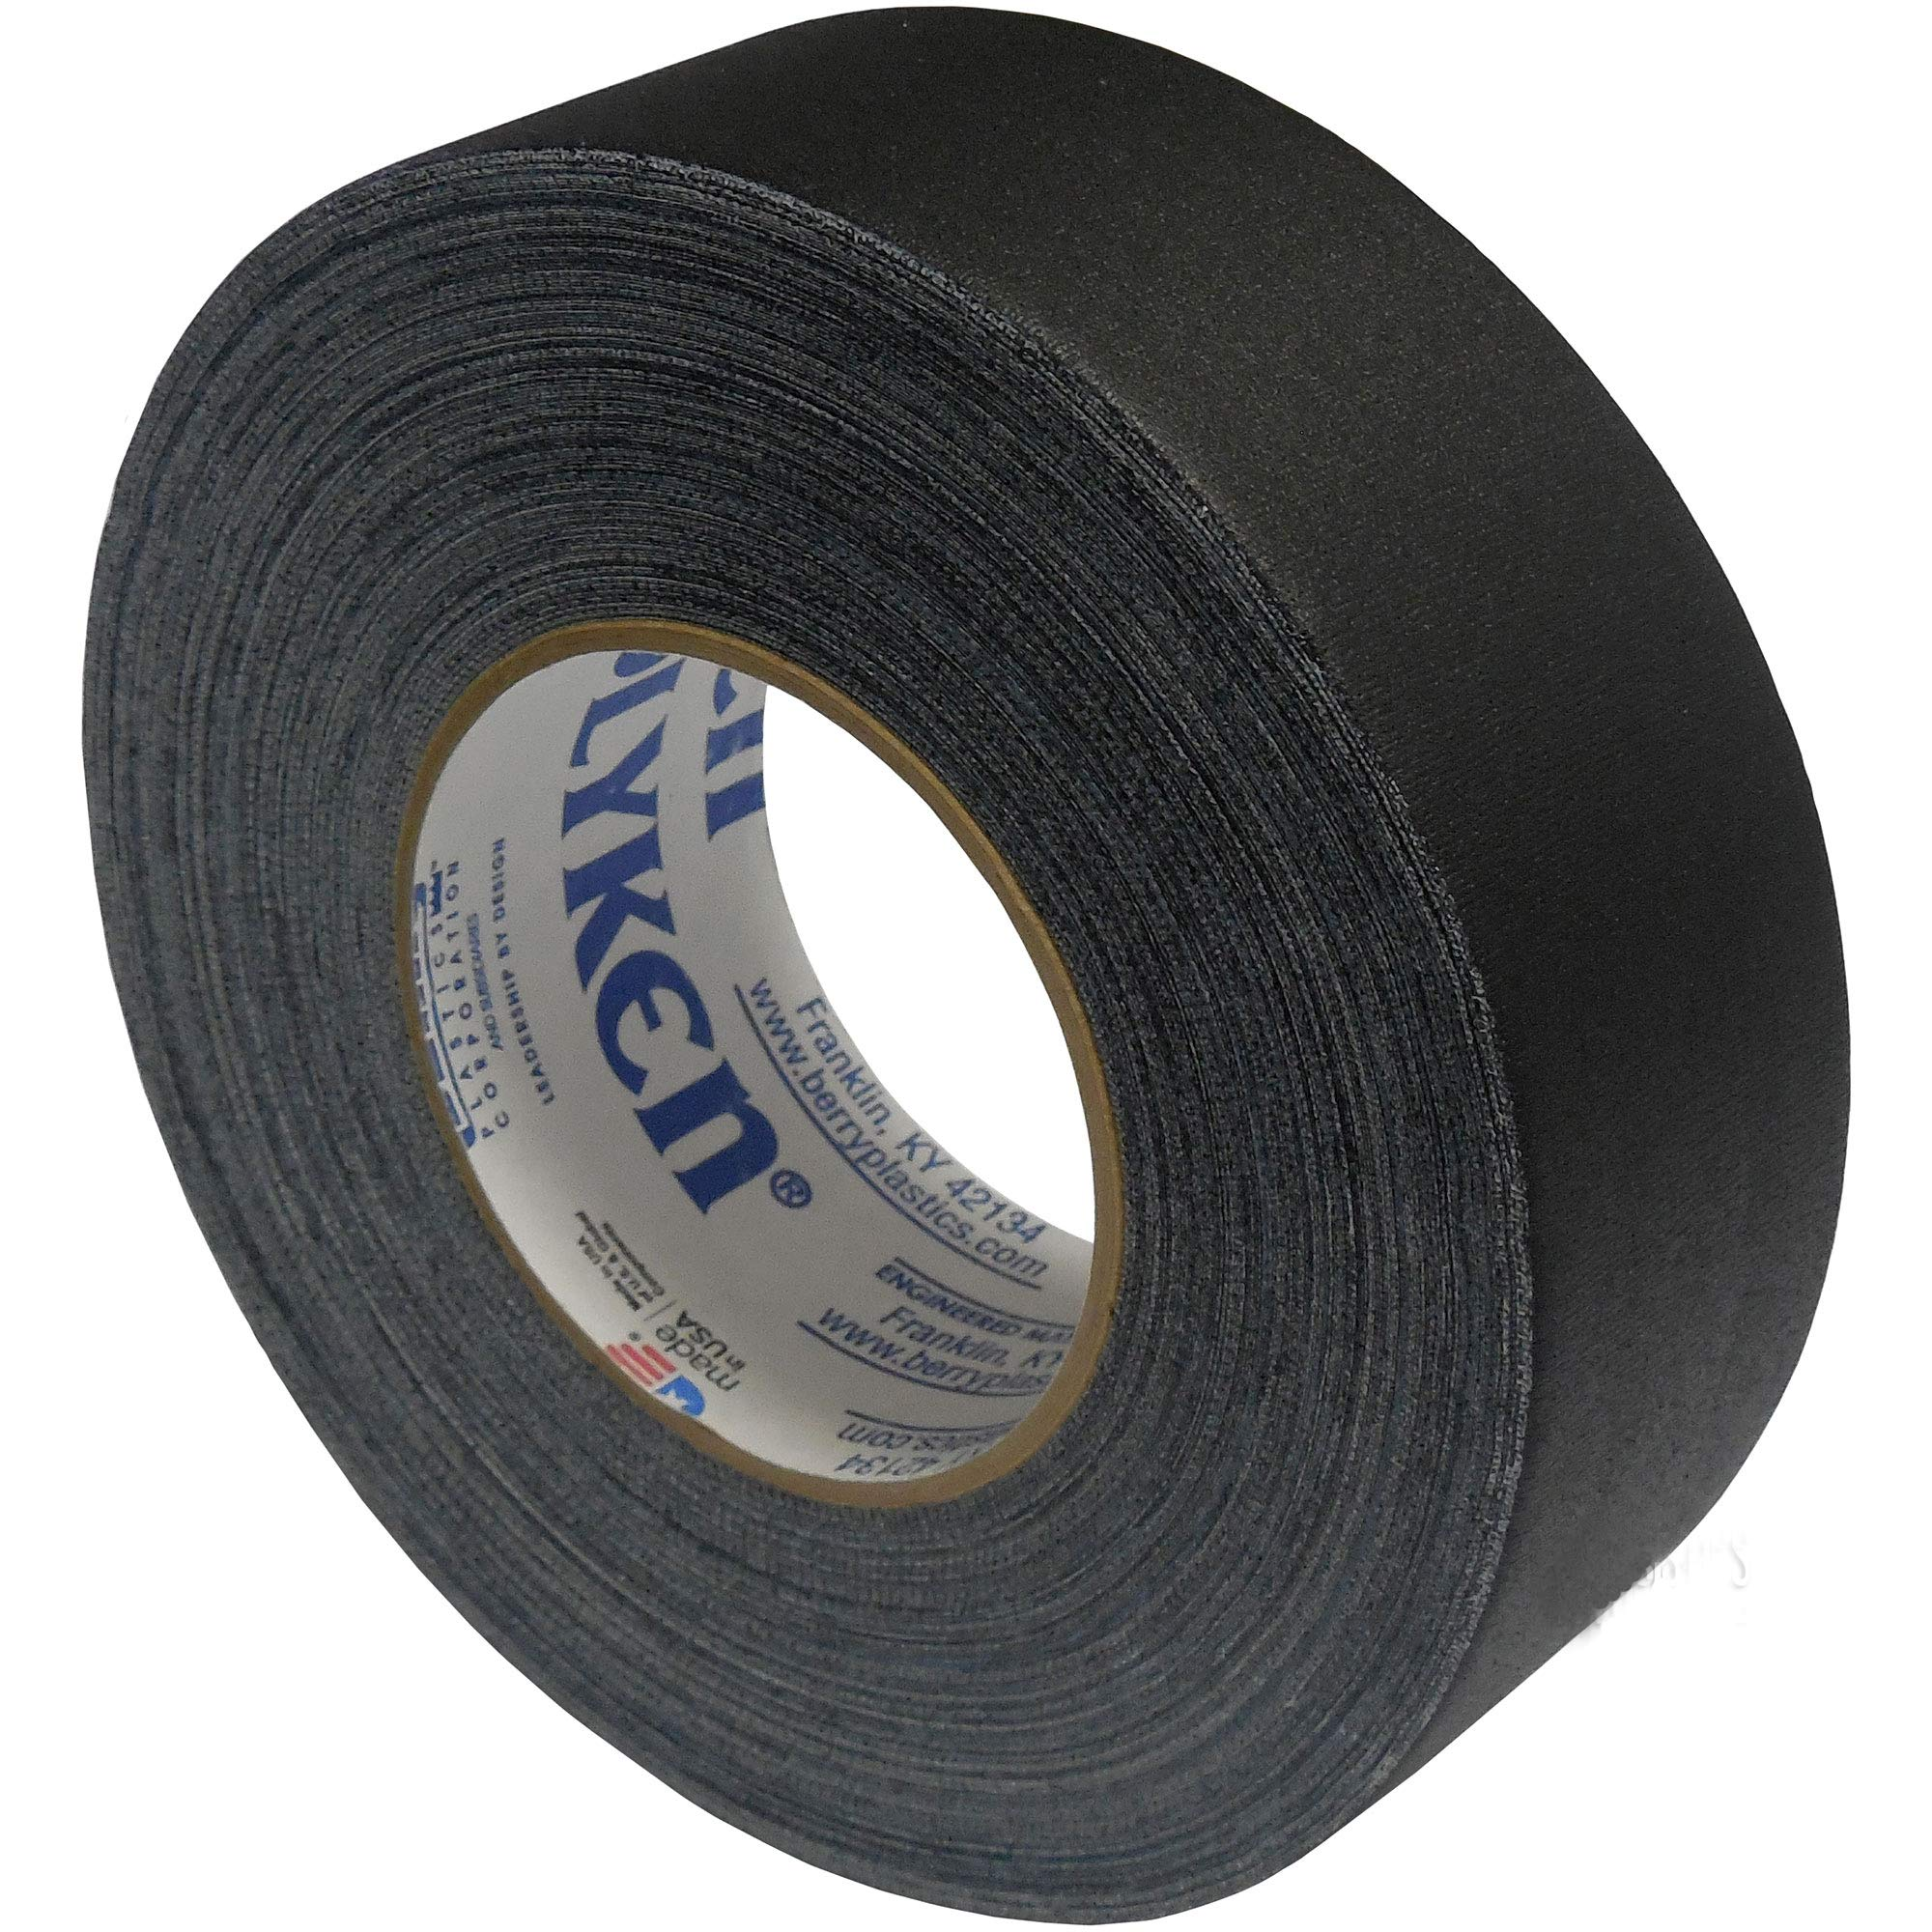 Seforim and Book Binding Specials - Polyken 3 Rolls Total of 3-inch Wide Black Book Binding Tape by Polyken